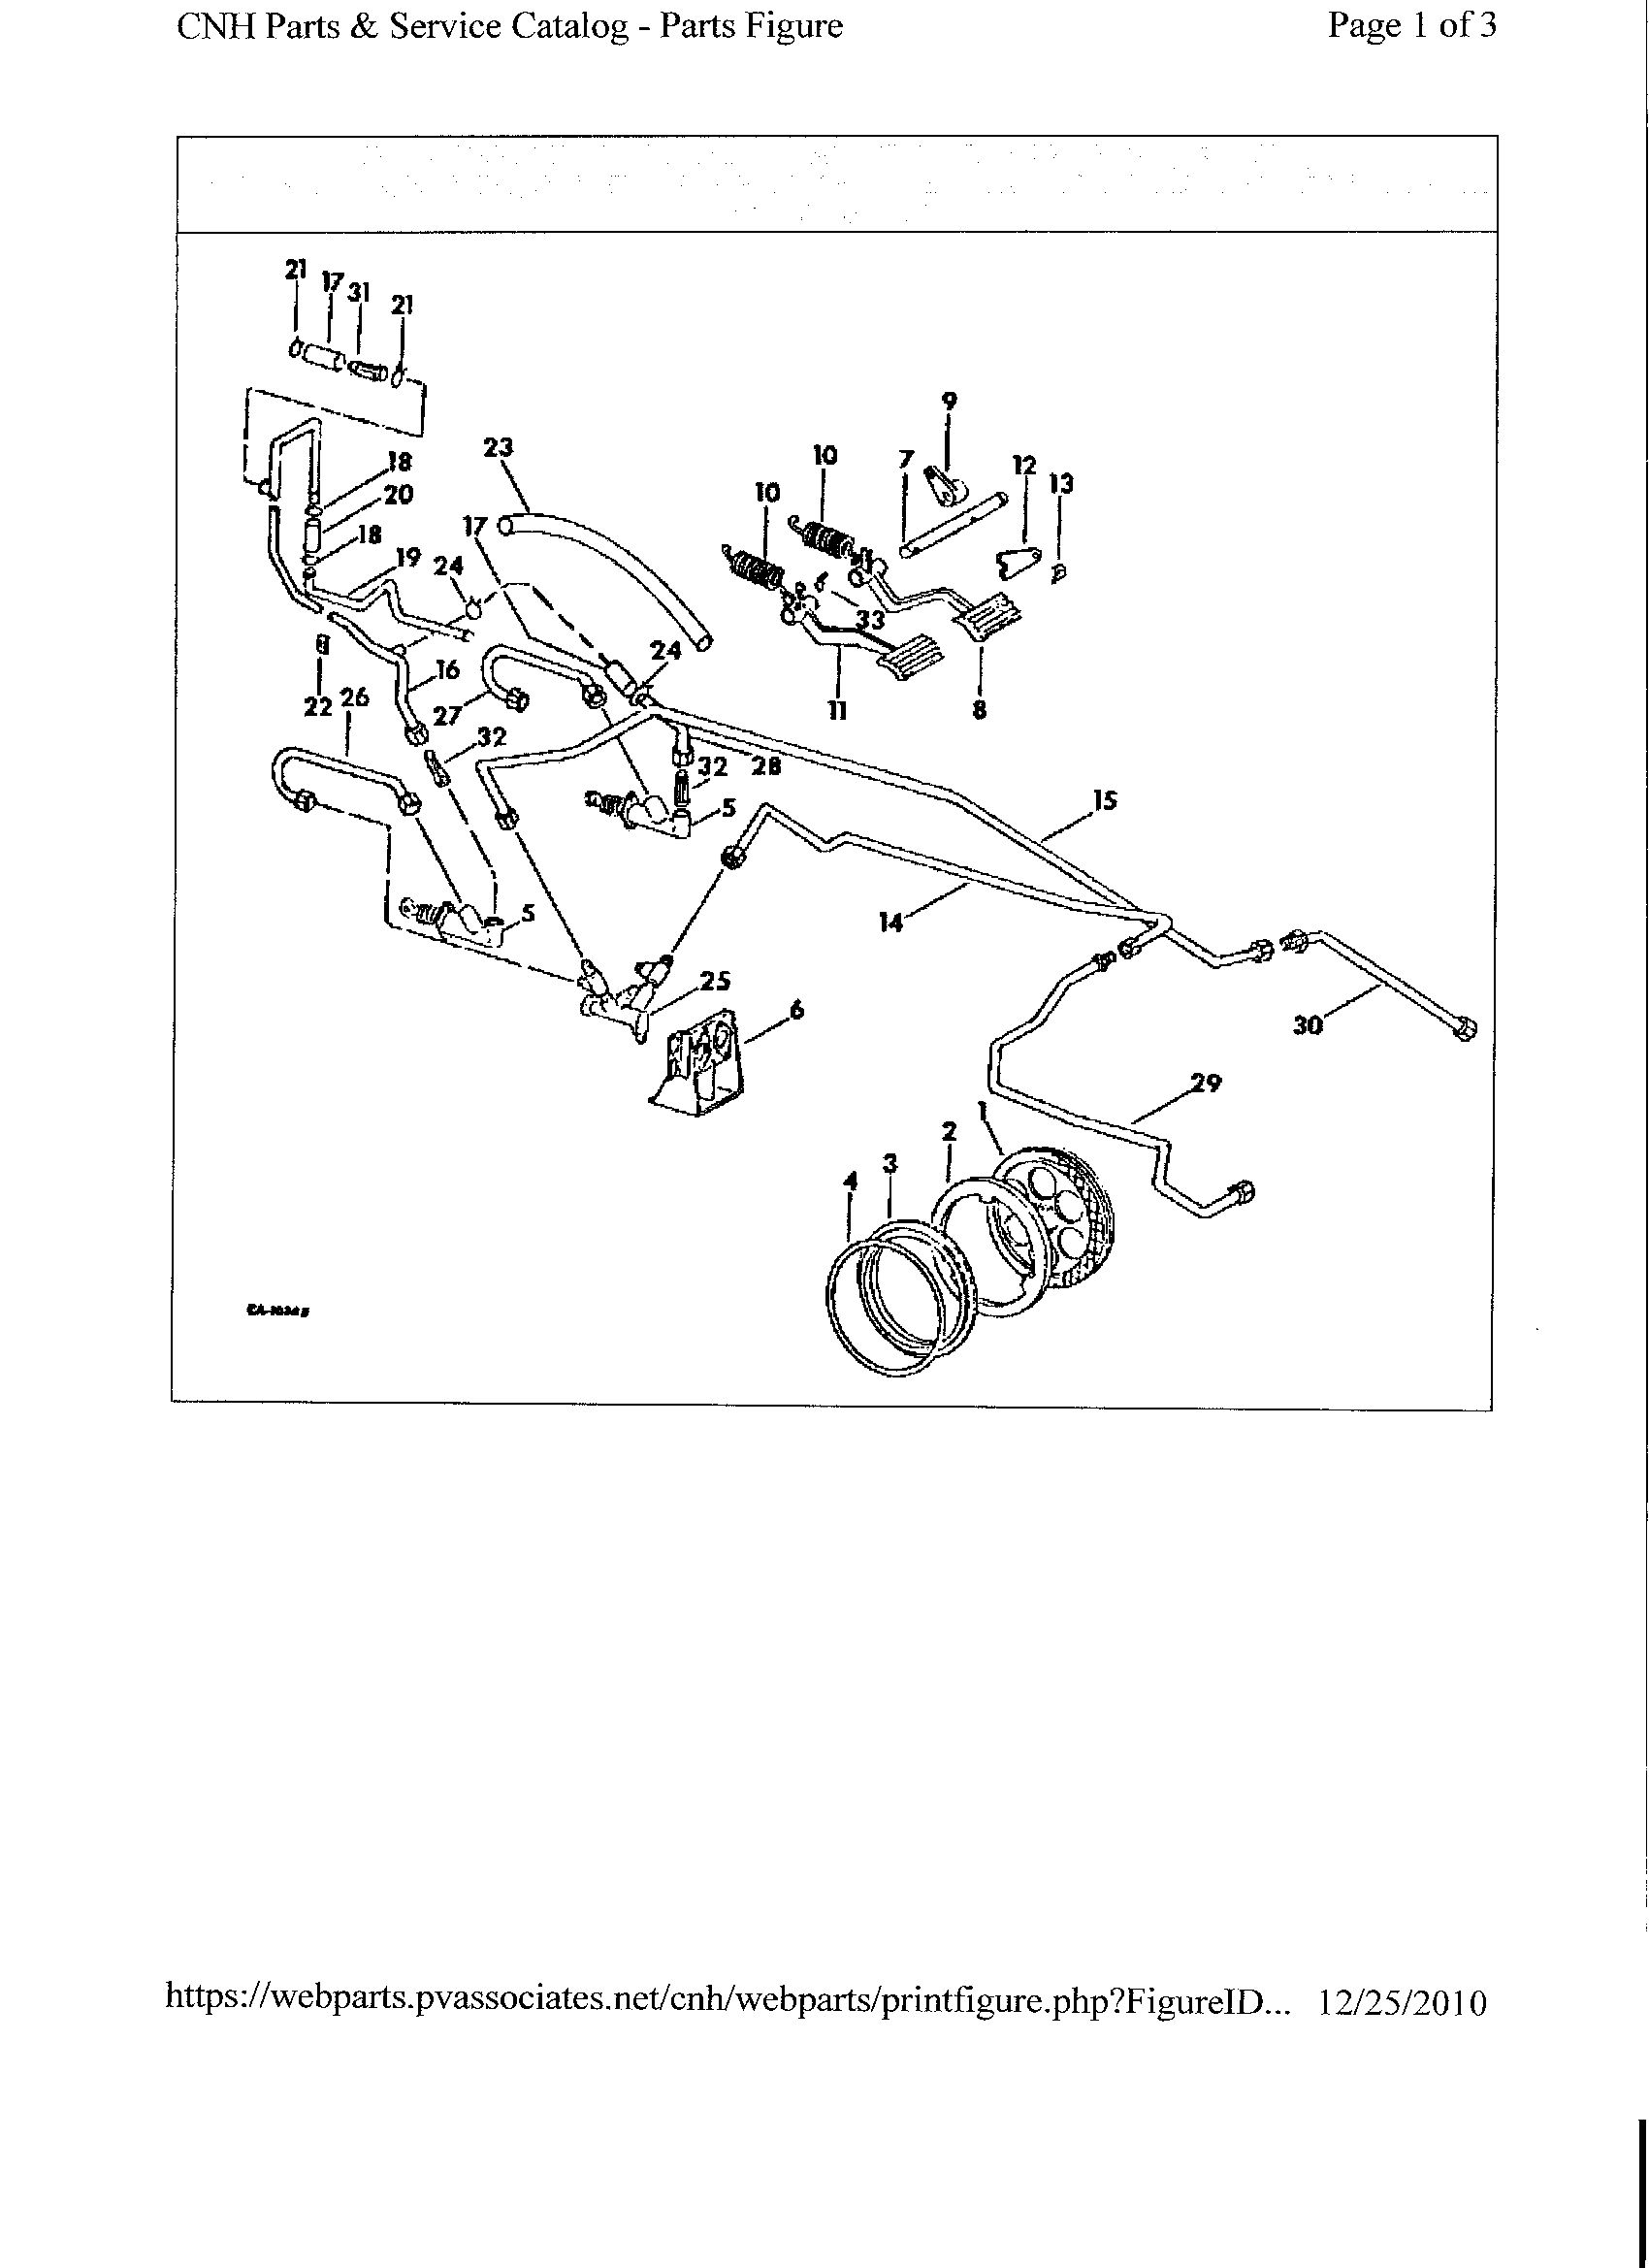 2c38c0e8549af752fcecd425bb78f8c2 192593d1293335885 brakes 574 international tractor ih 574 brake ih 574 wiring diagram at honlapkeszites.co